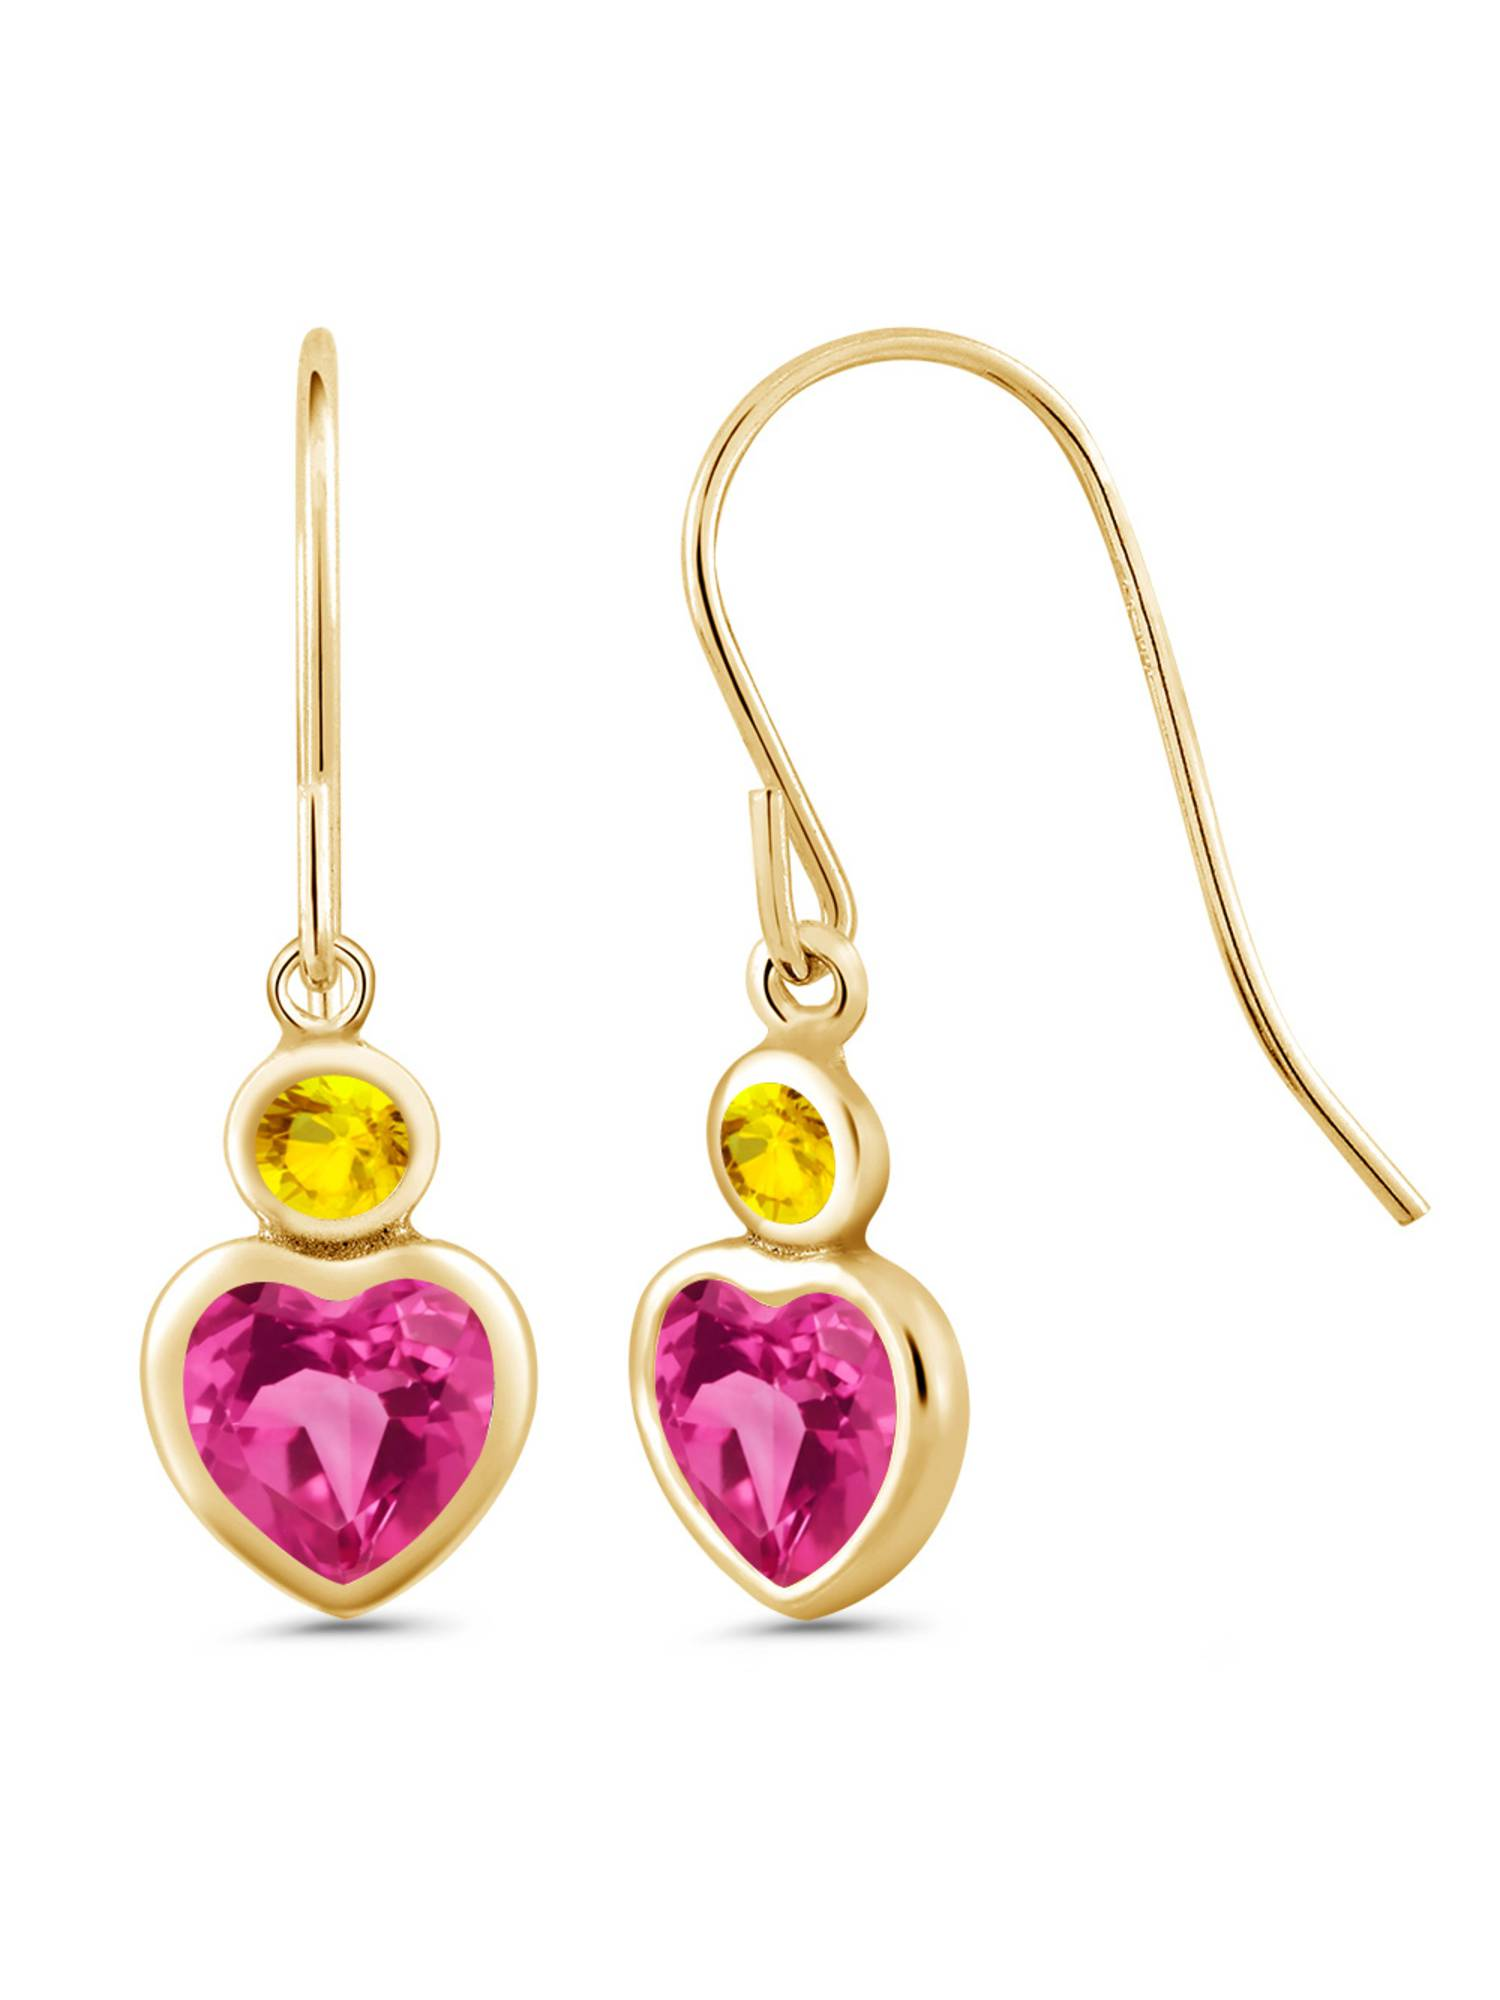 1.46 Ct Pink Created Sapphire Yellow Sapphire 14K Yellow Gold Earrings by